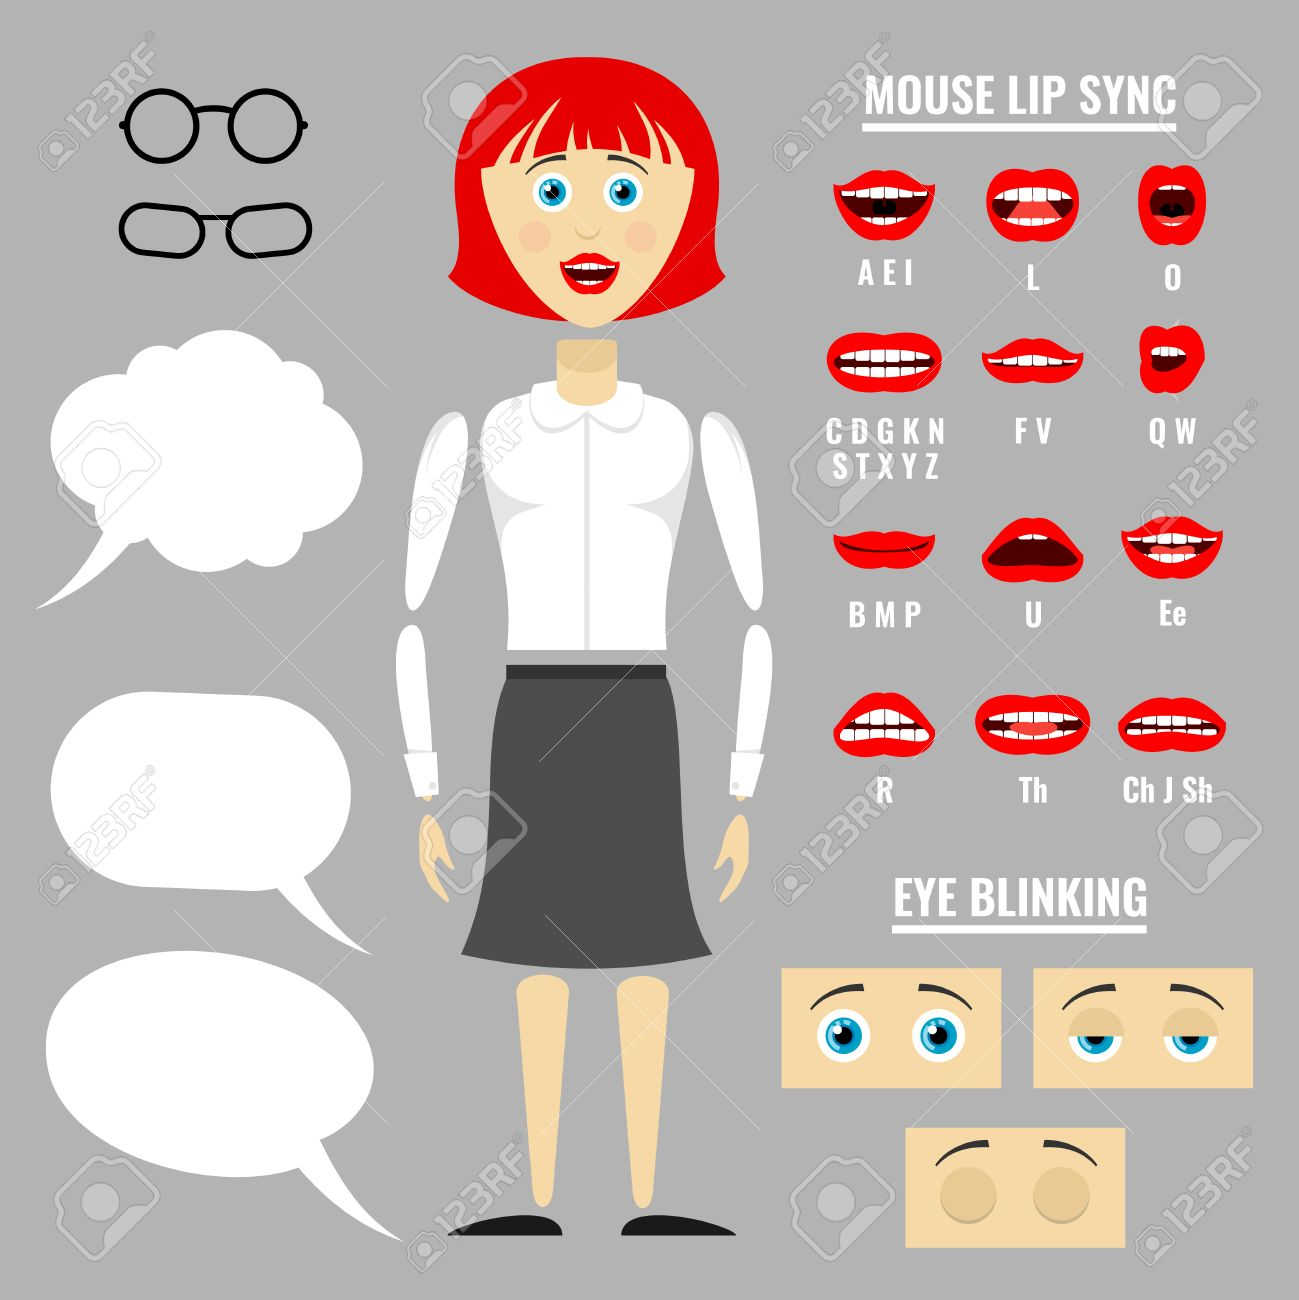 Ready To Animation Vector Parts Of Cartoon Girl Character Lip Movement  During Speech Illustration Stock Ready